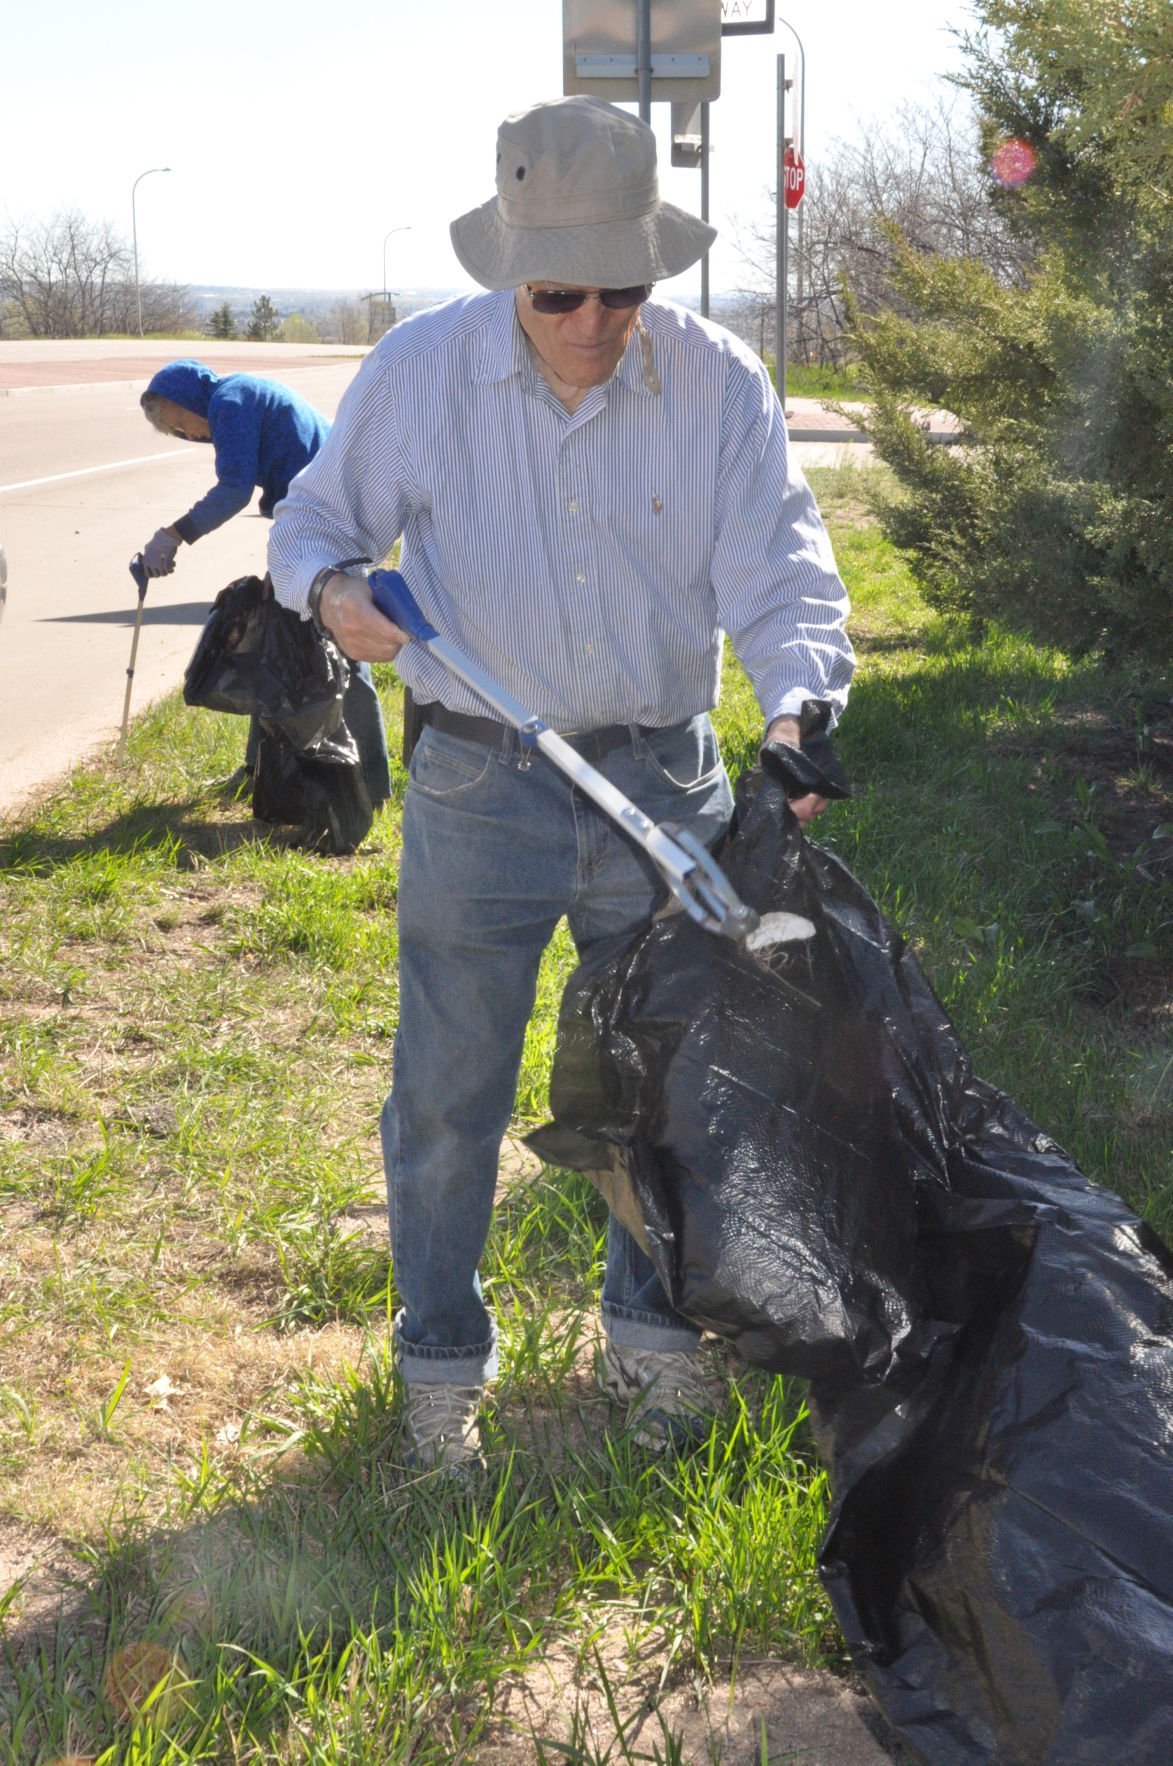 Broadmoor Community Church's cleanup efforts along Lake Avenue